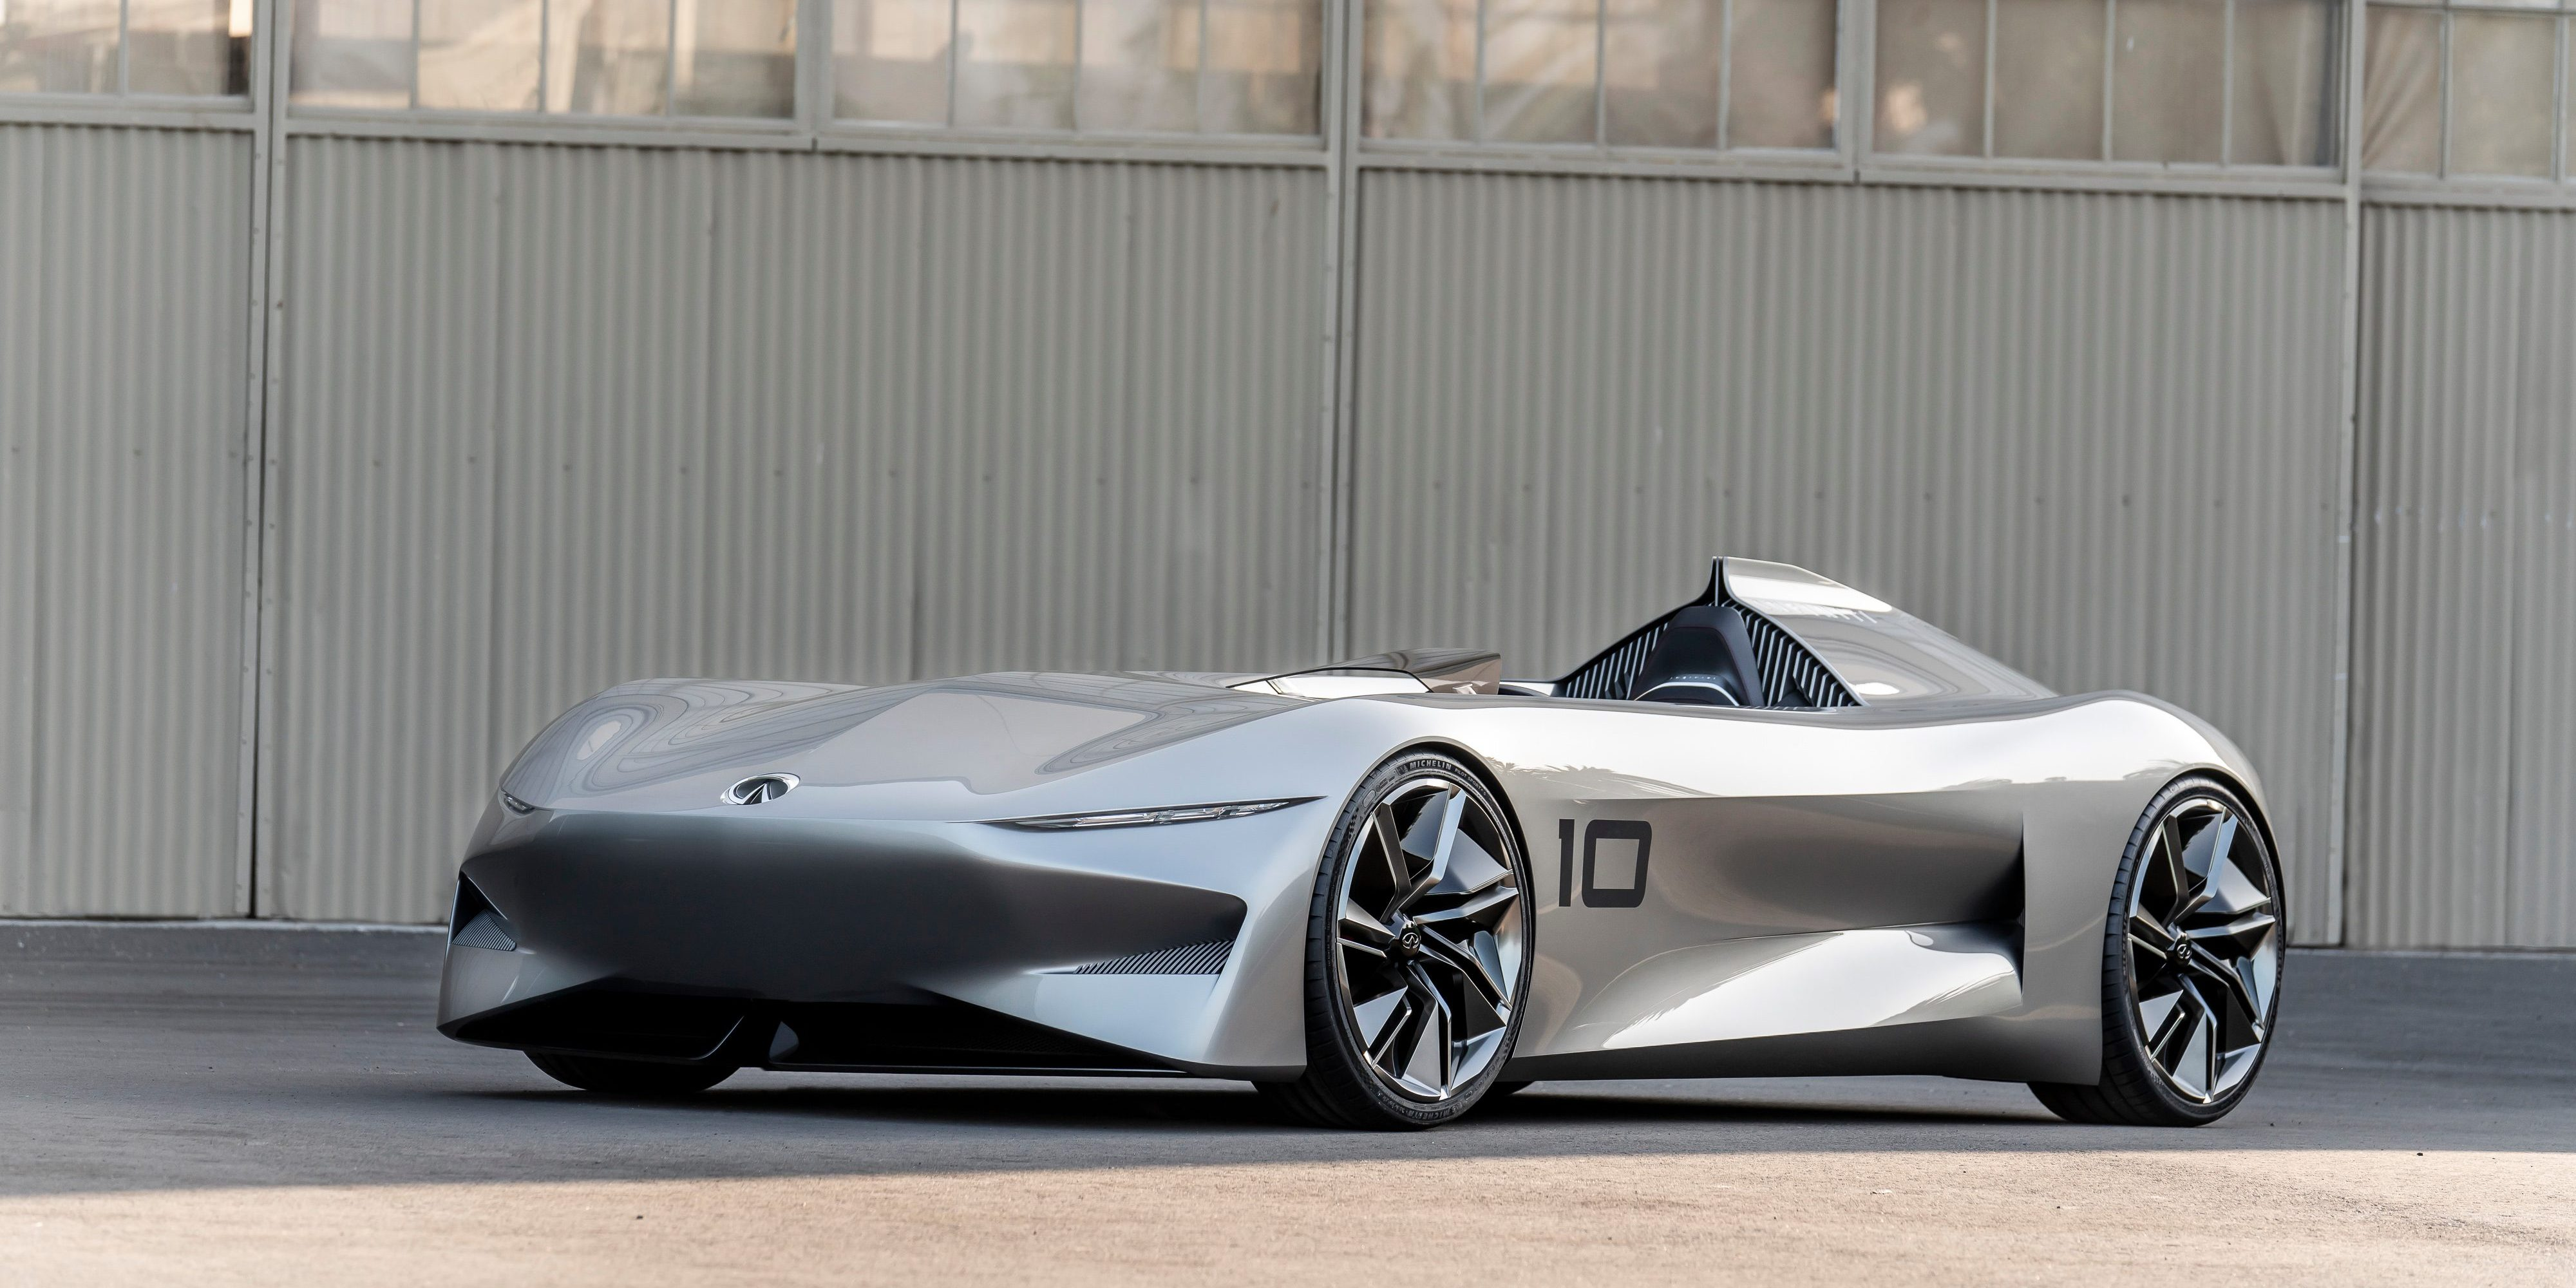 Bridging Past And Future The Infiniti Prototype 10 Recaptures Spirit Of Early Sdsters For An Era Electrified Performance